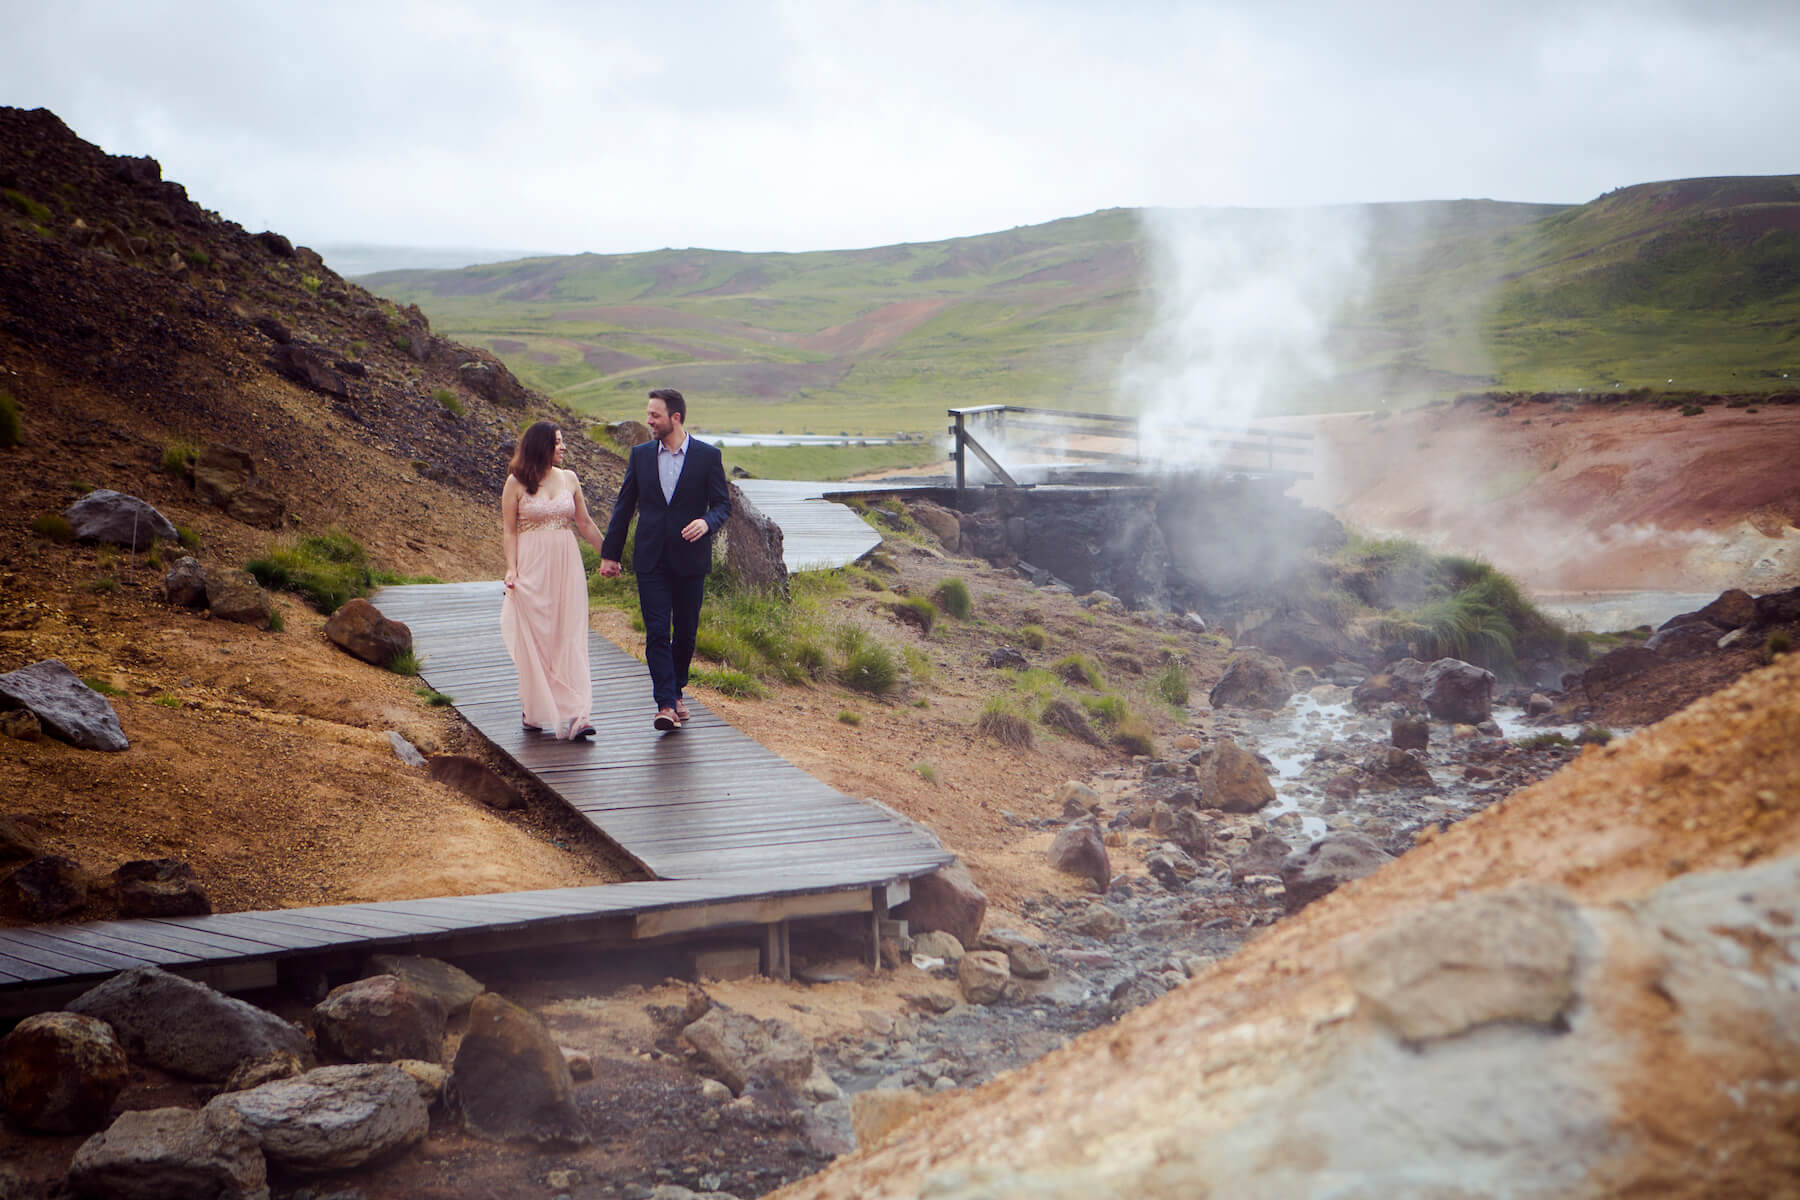 A well-dressed man and woman holding hands and walking by a steaming geyser in the rugged landscape close to Reykjavik, Iceland.